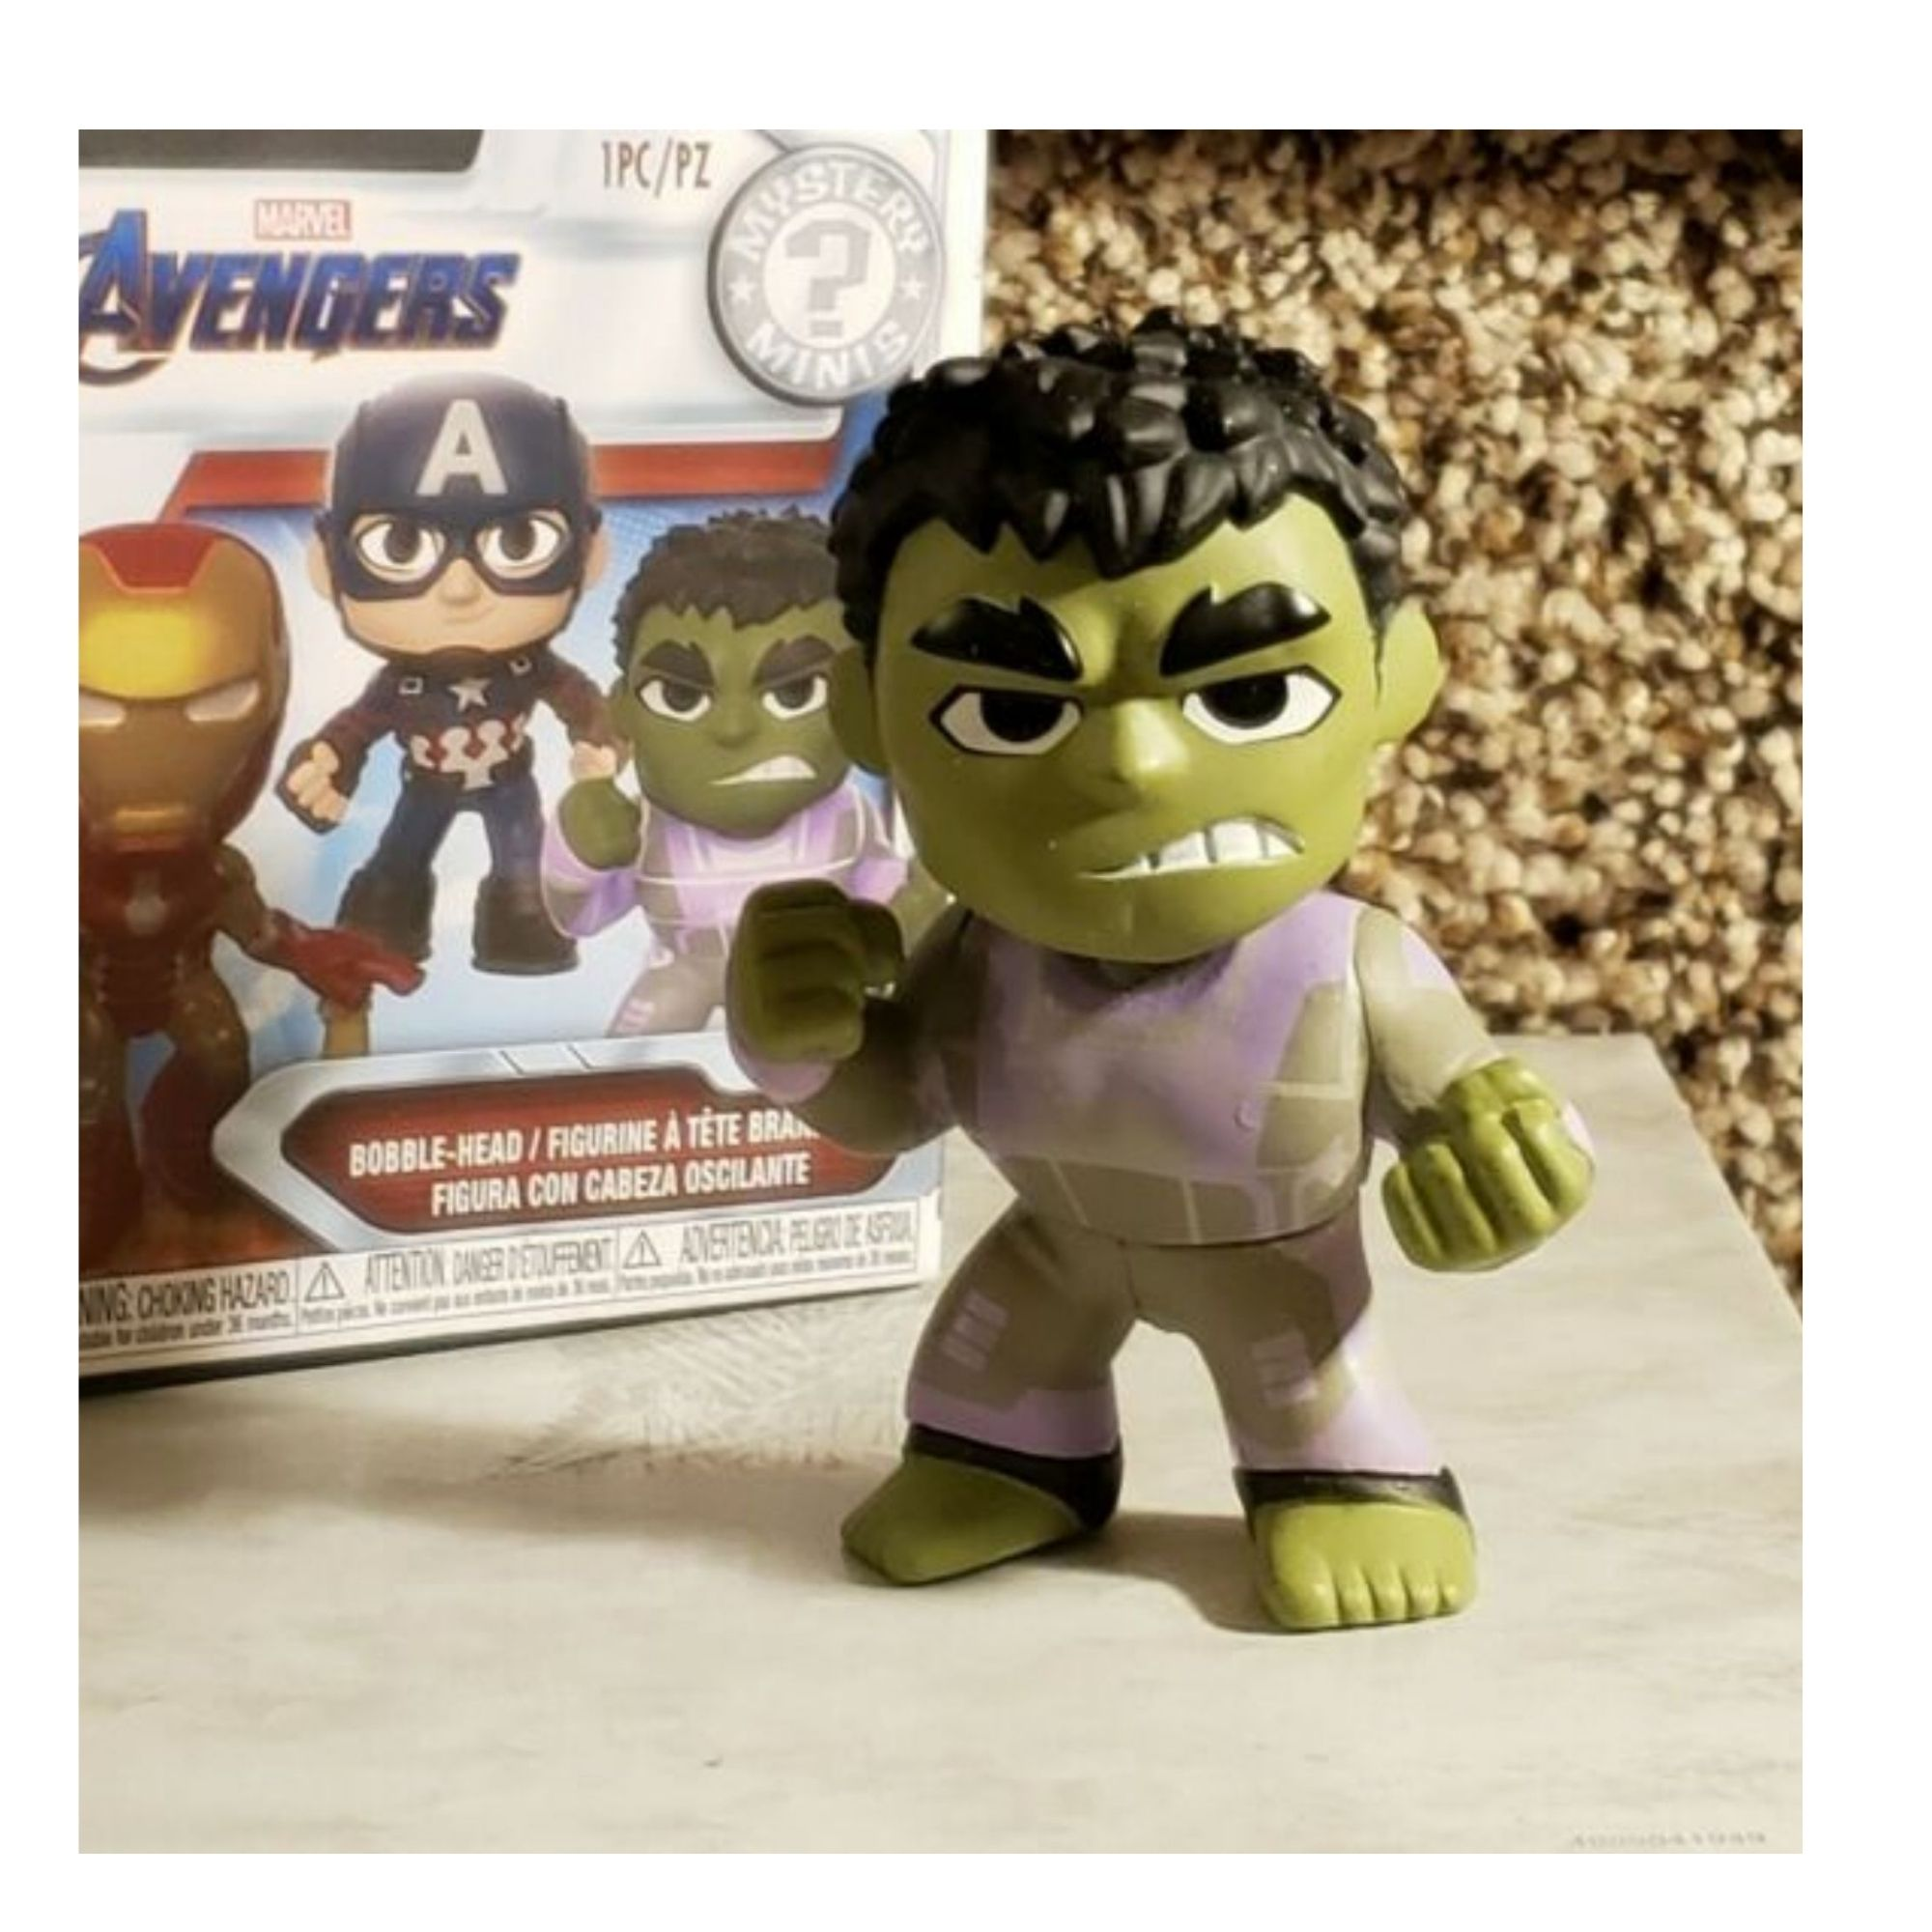 Funko Mini Mystery Marvel Avengers Hulk bobble-head  - Game Land Brinquedos